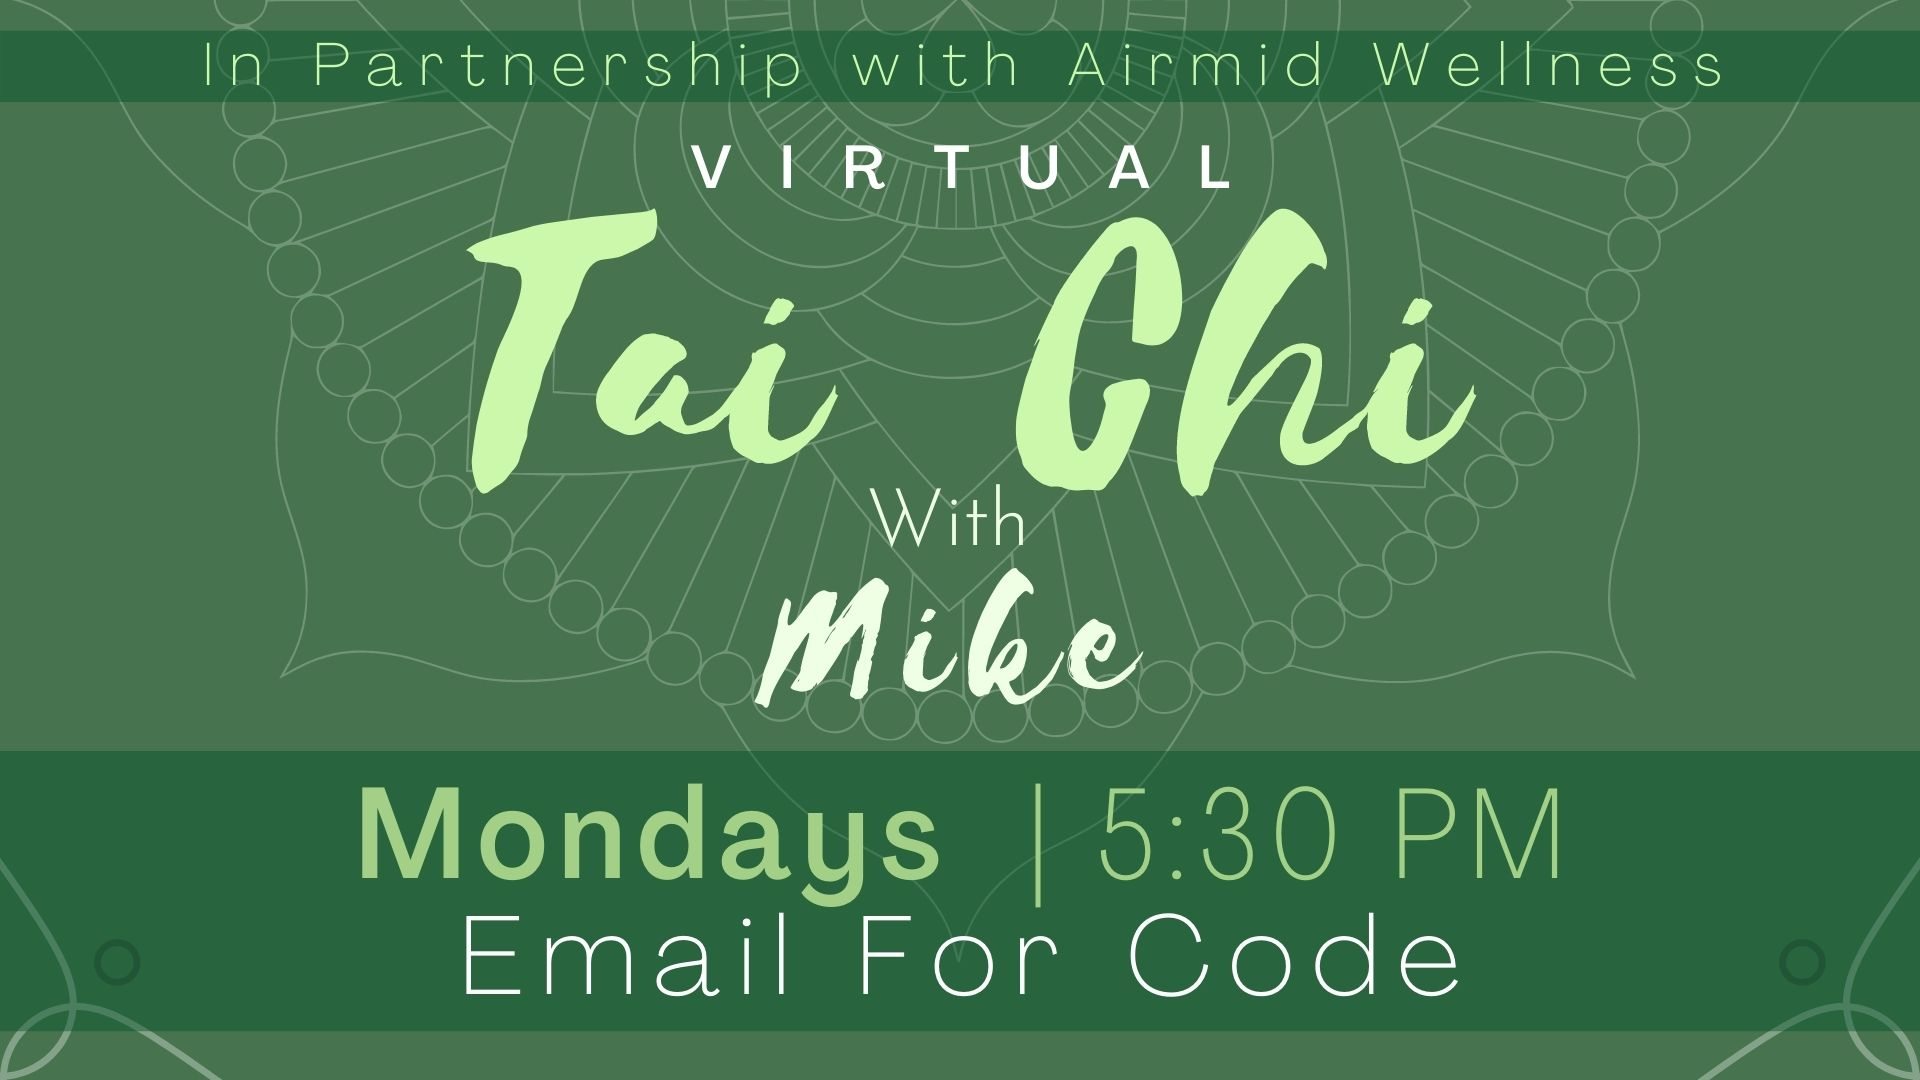 Tai Chi with Mike